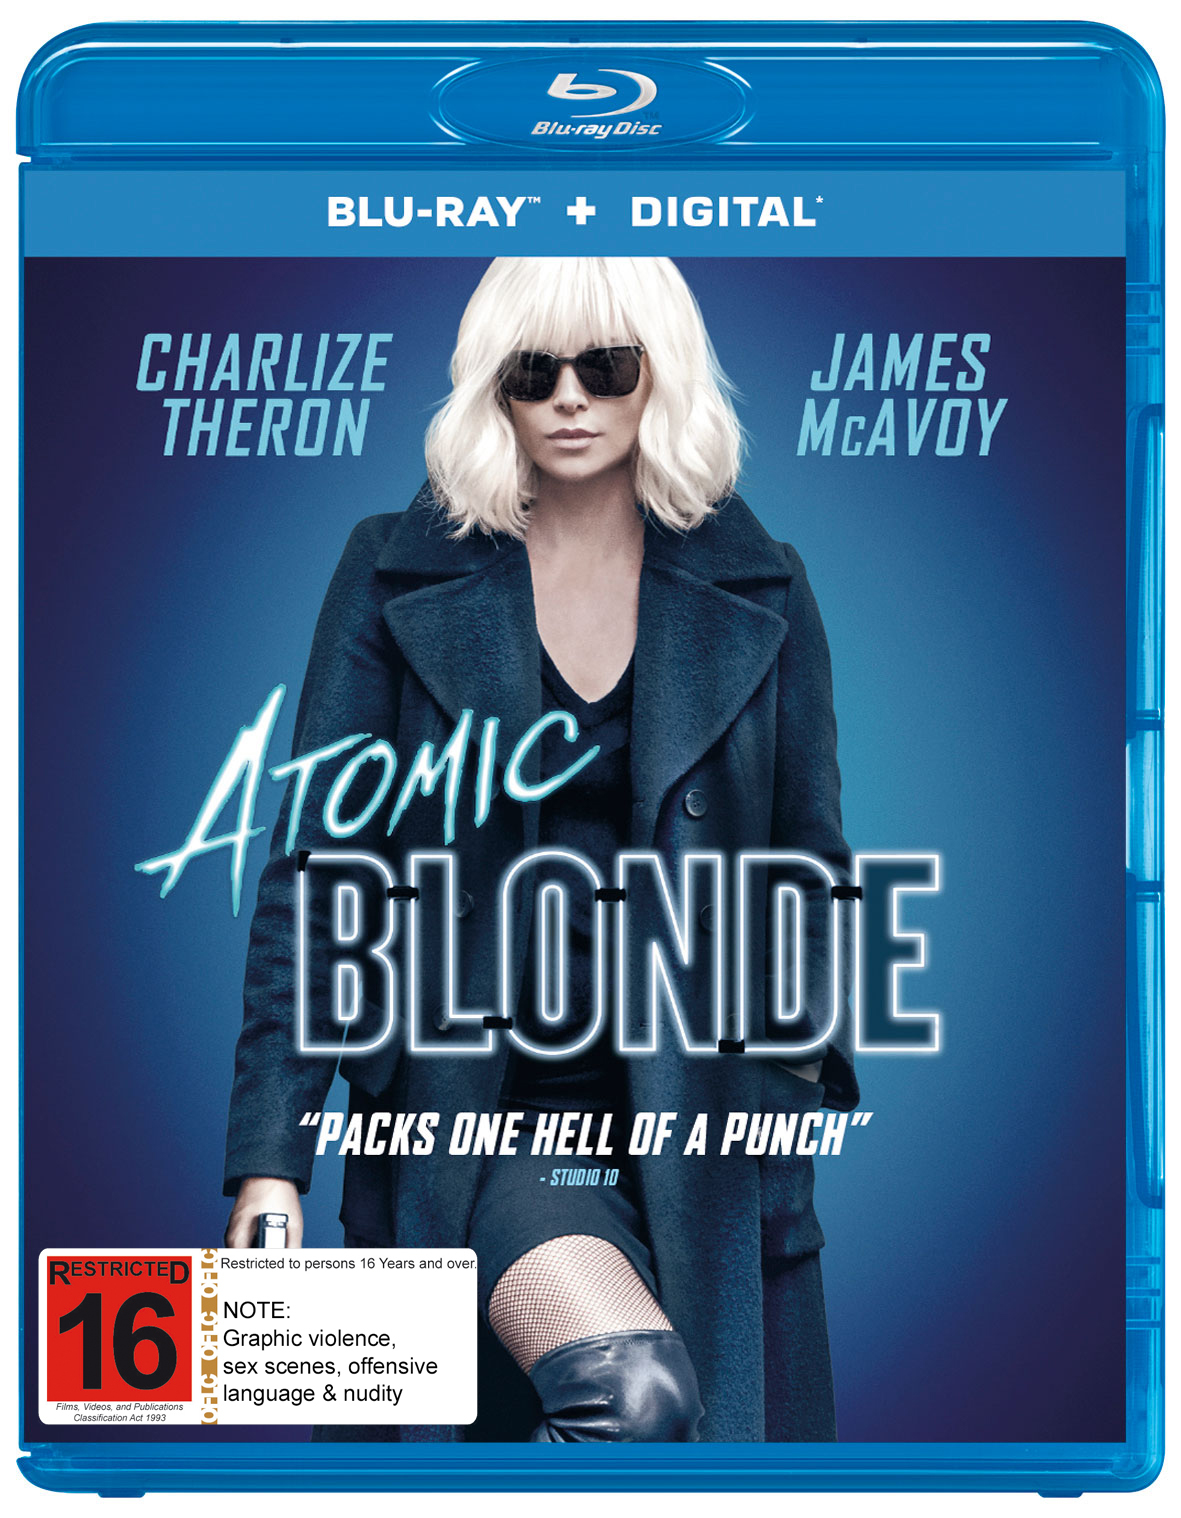 Atomic Blonde on Blu-ray image